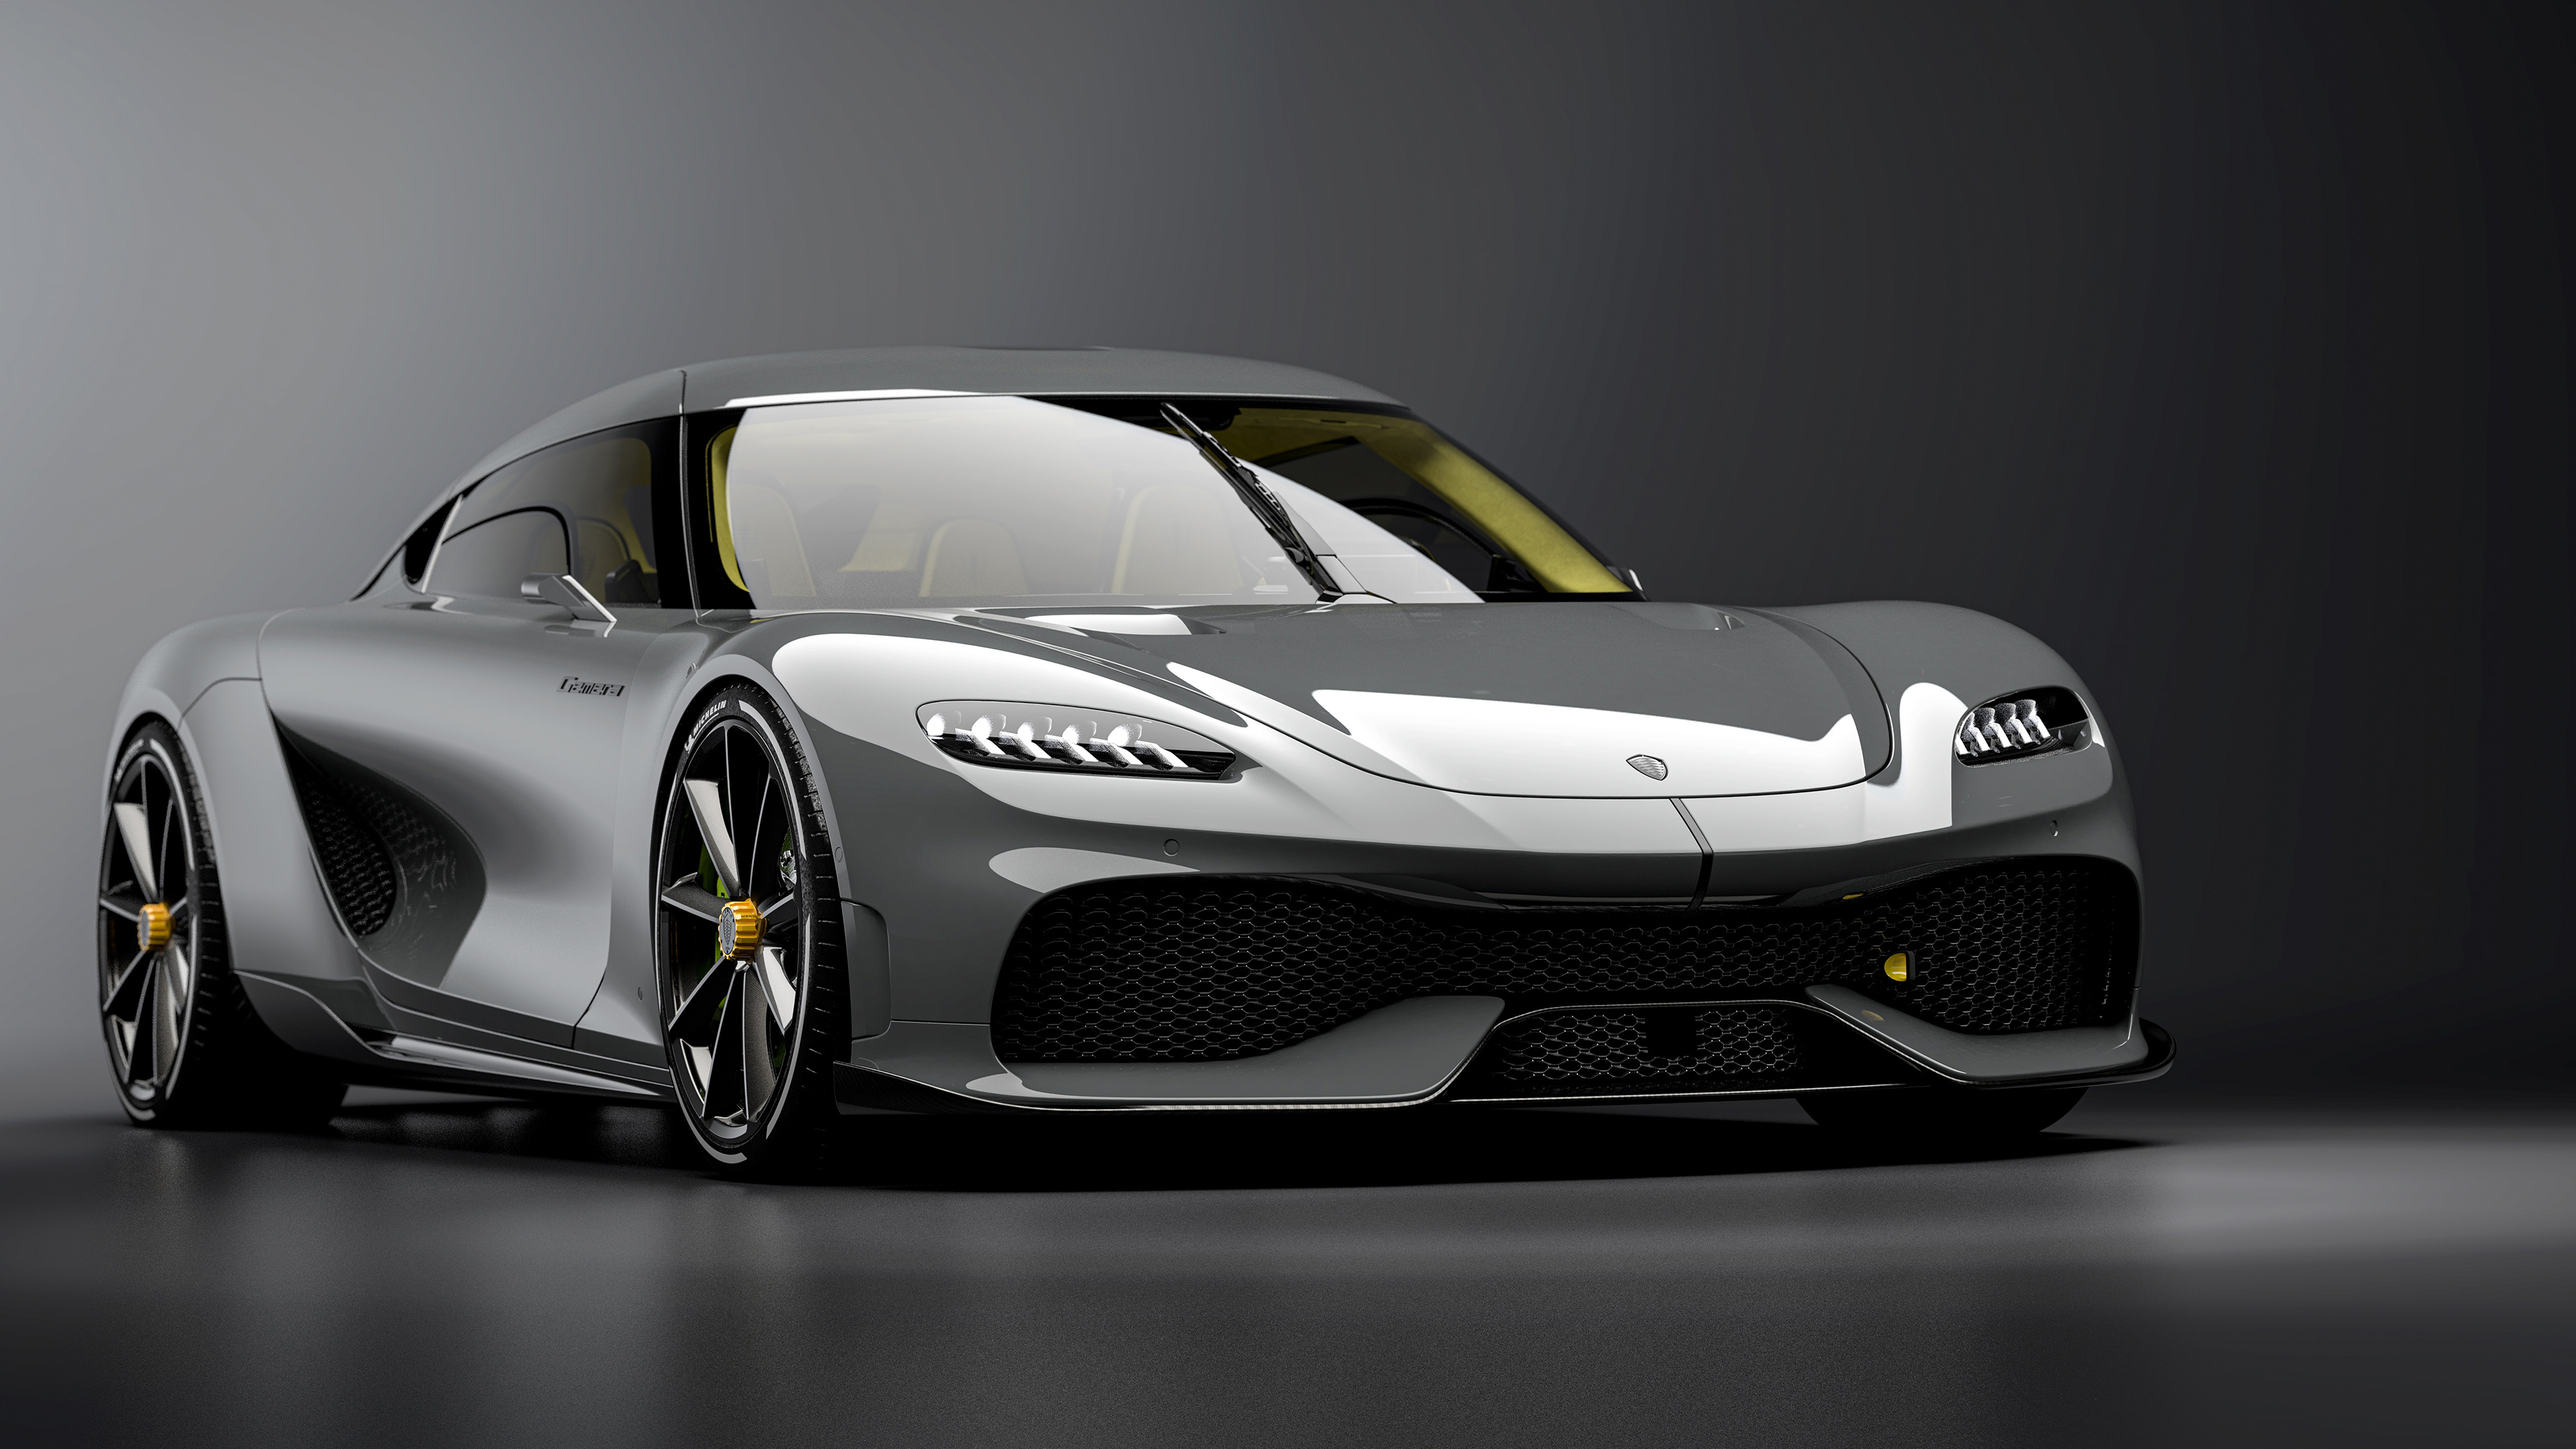 New Koenigsegg Gemera Is A Four Door Hypercar With 1